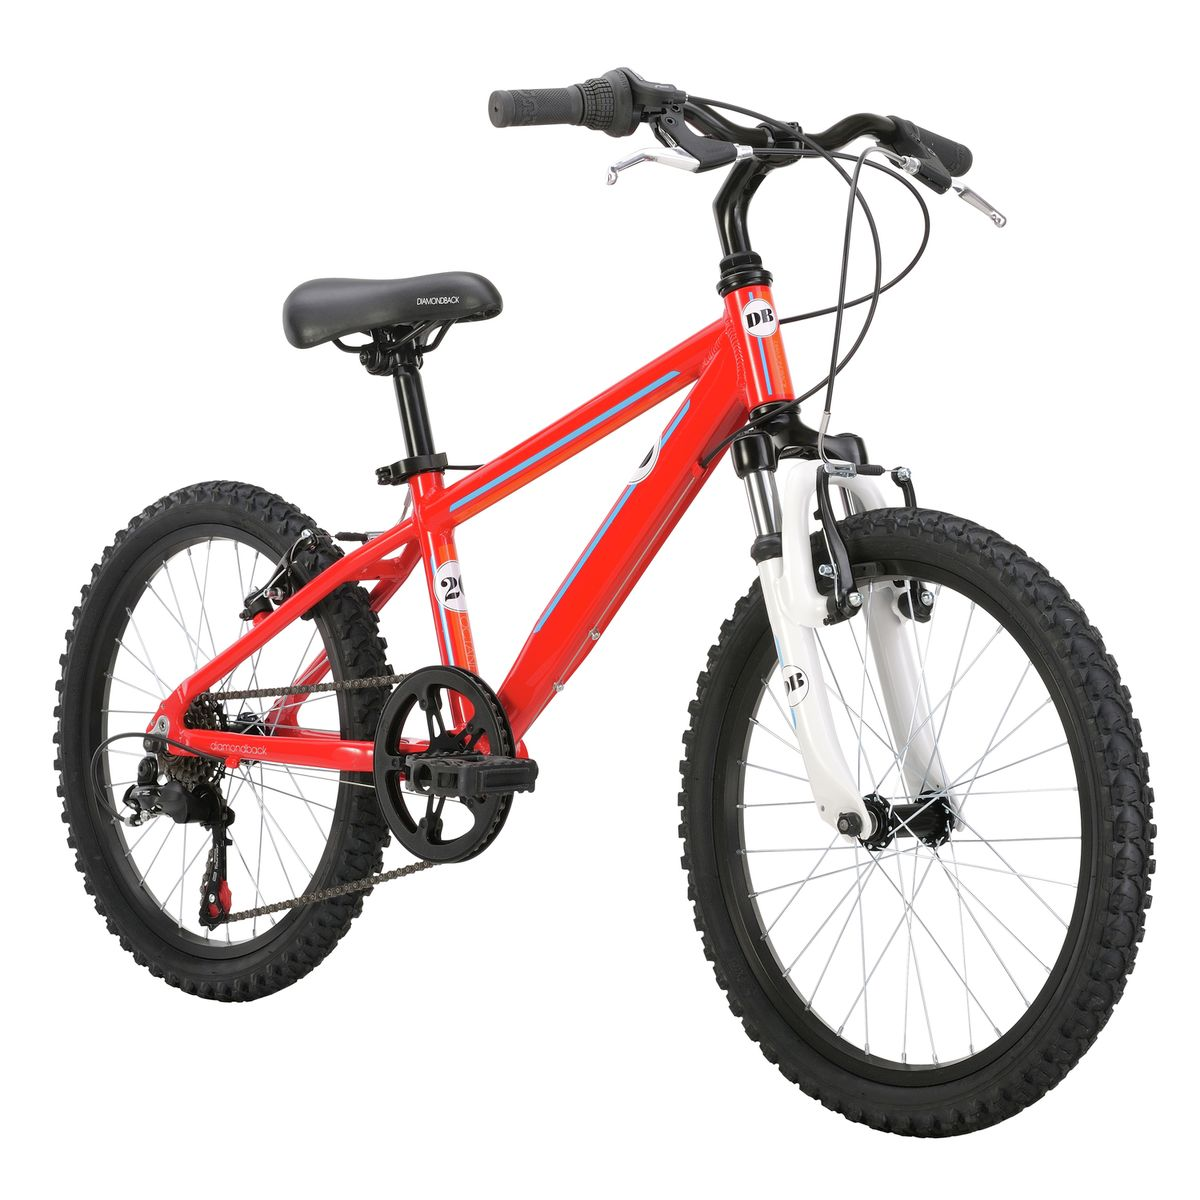 Diamondback Octane 20 Kids' Bike 2016